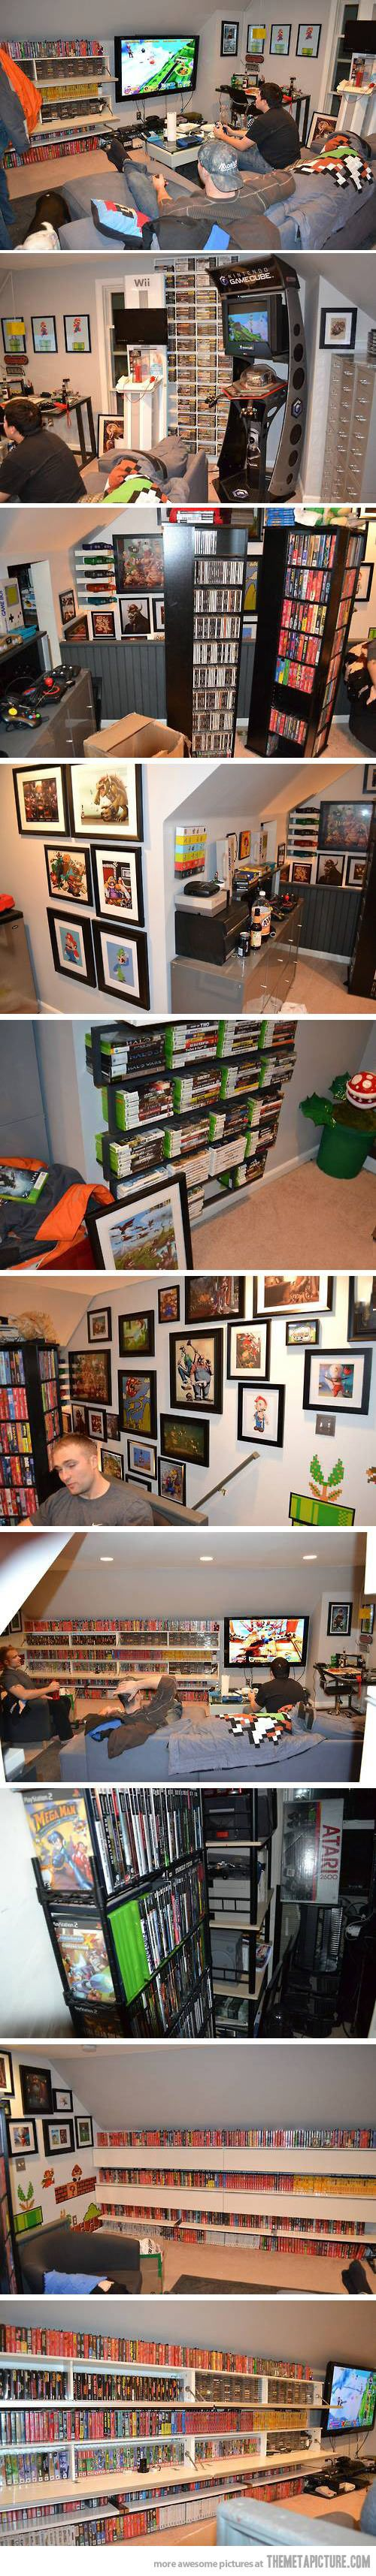 Whenever we buy a house, I'm thinking we need an extra room so that @Joshua Tribble can do this!